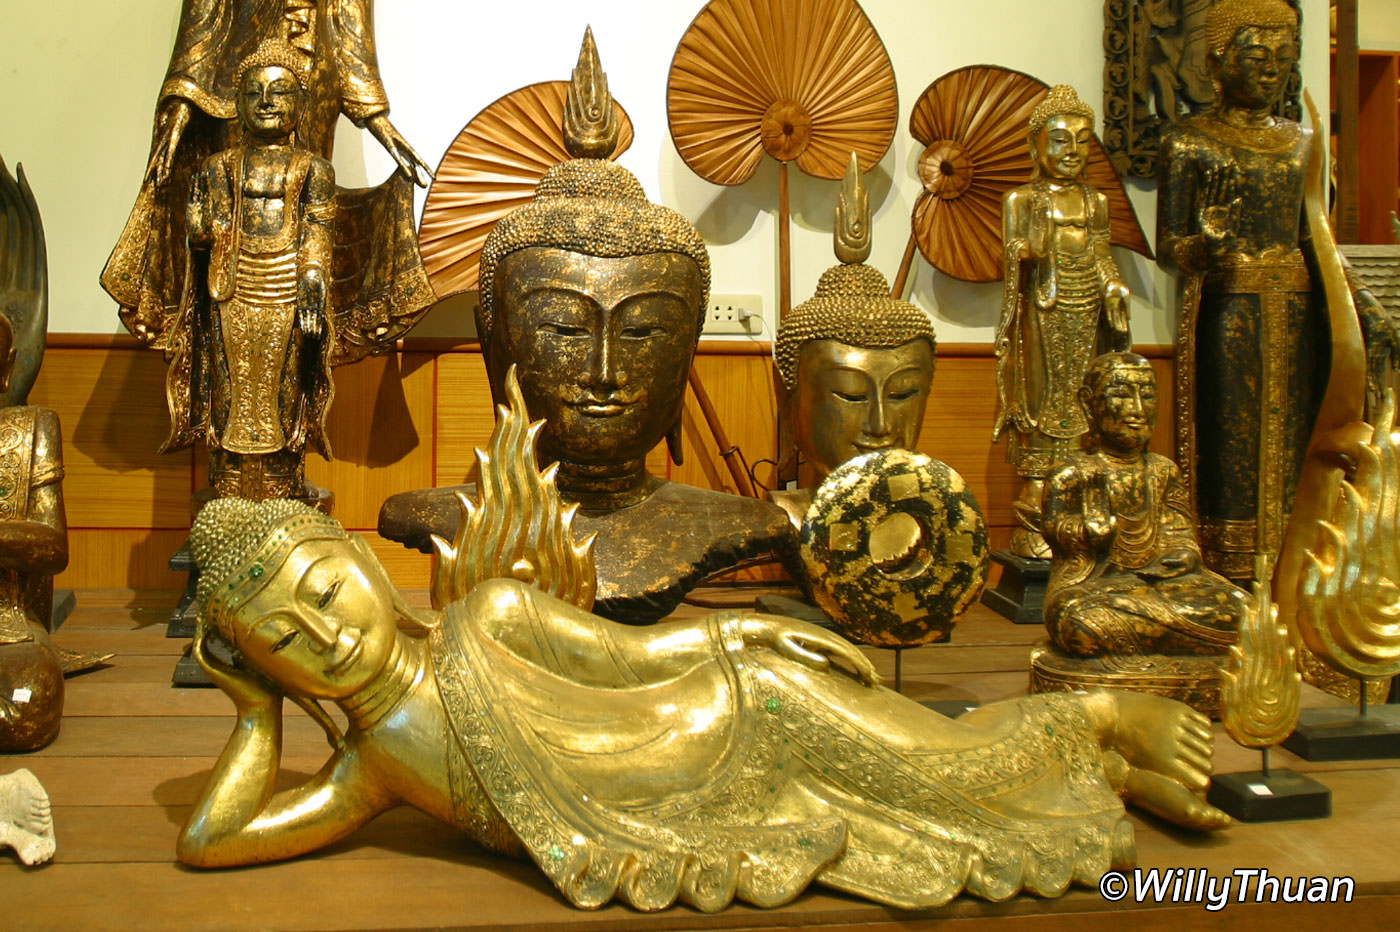 Buying Buddha Images in Thailand